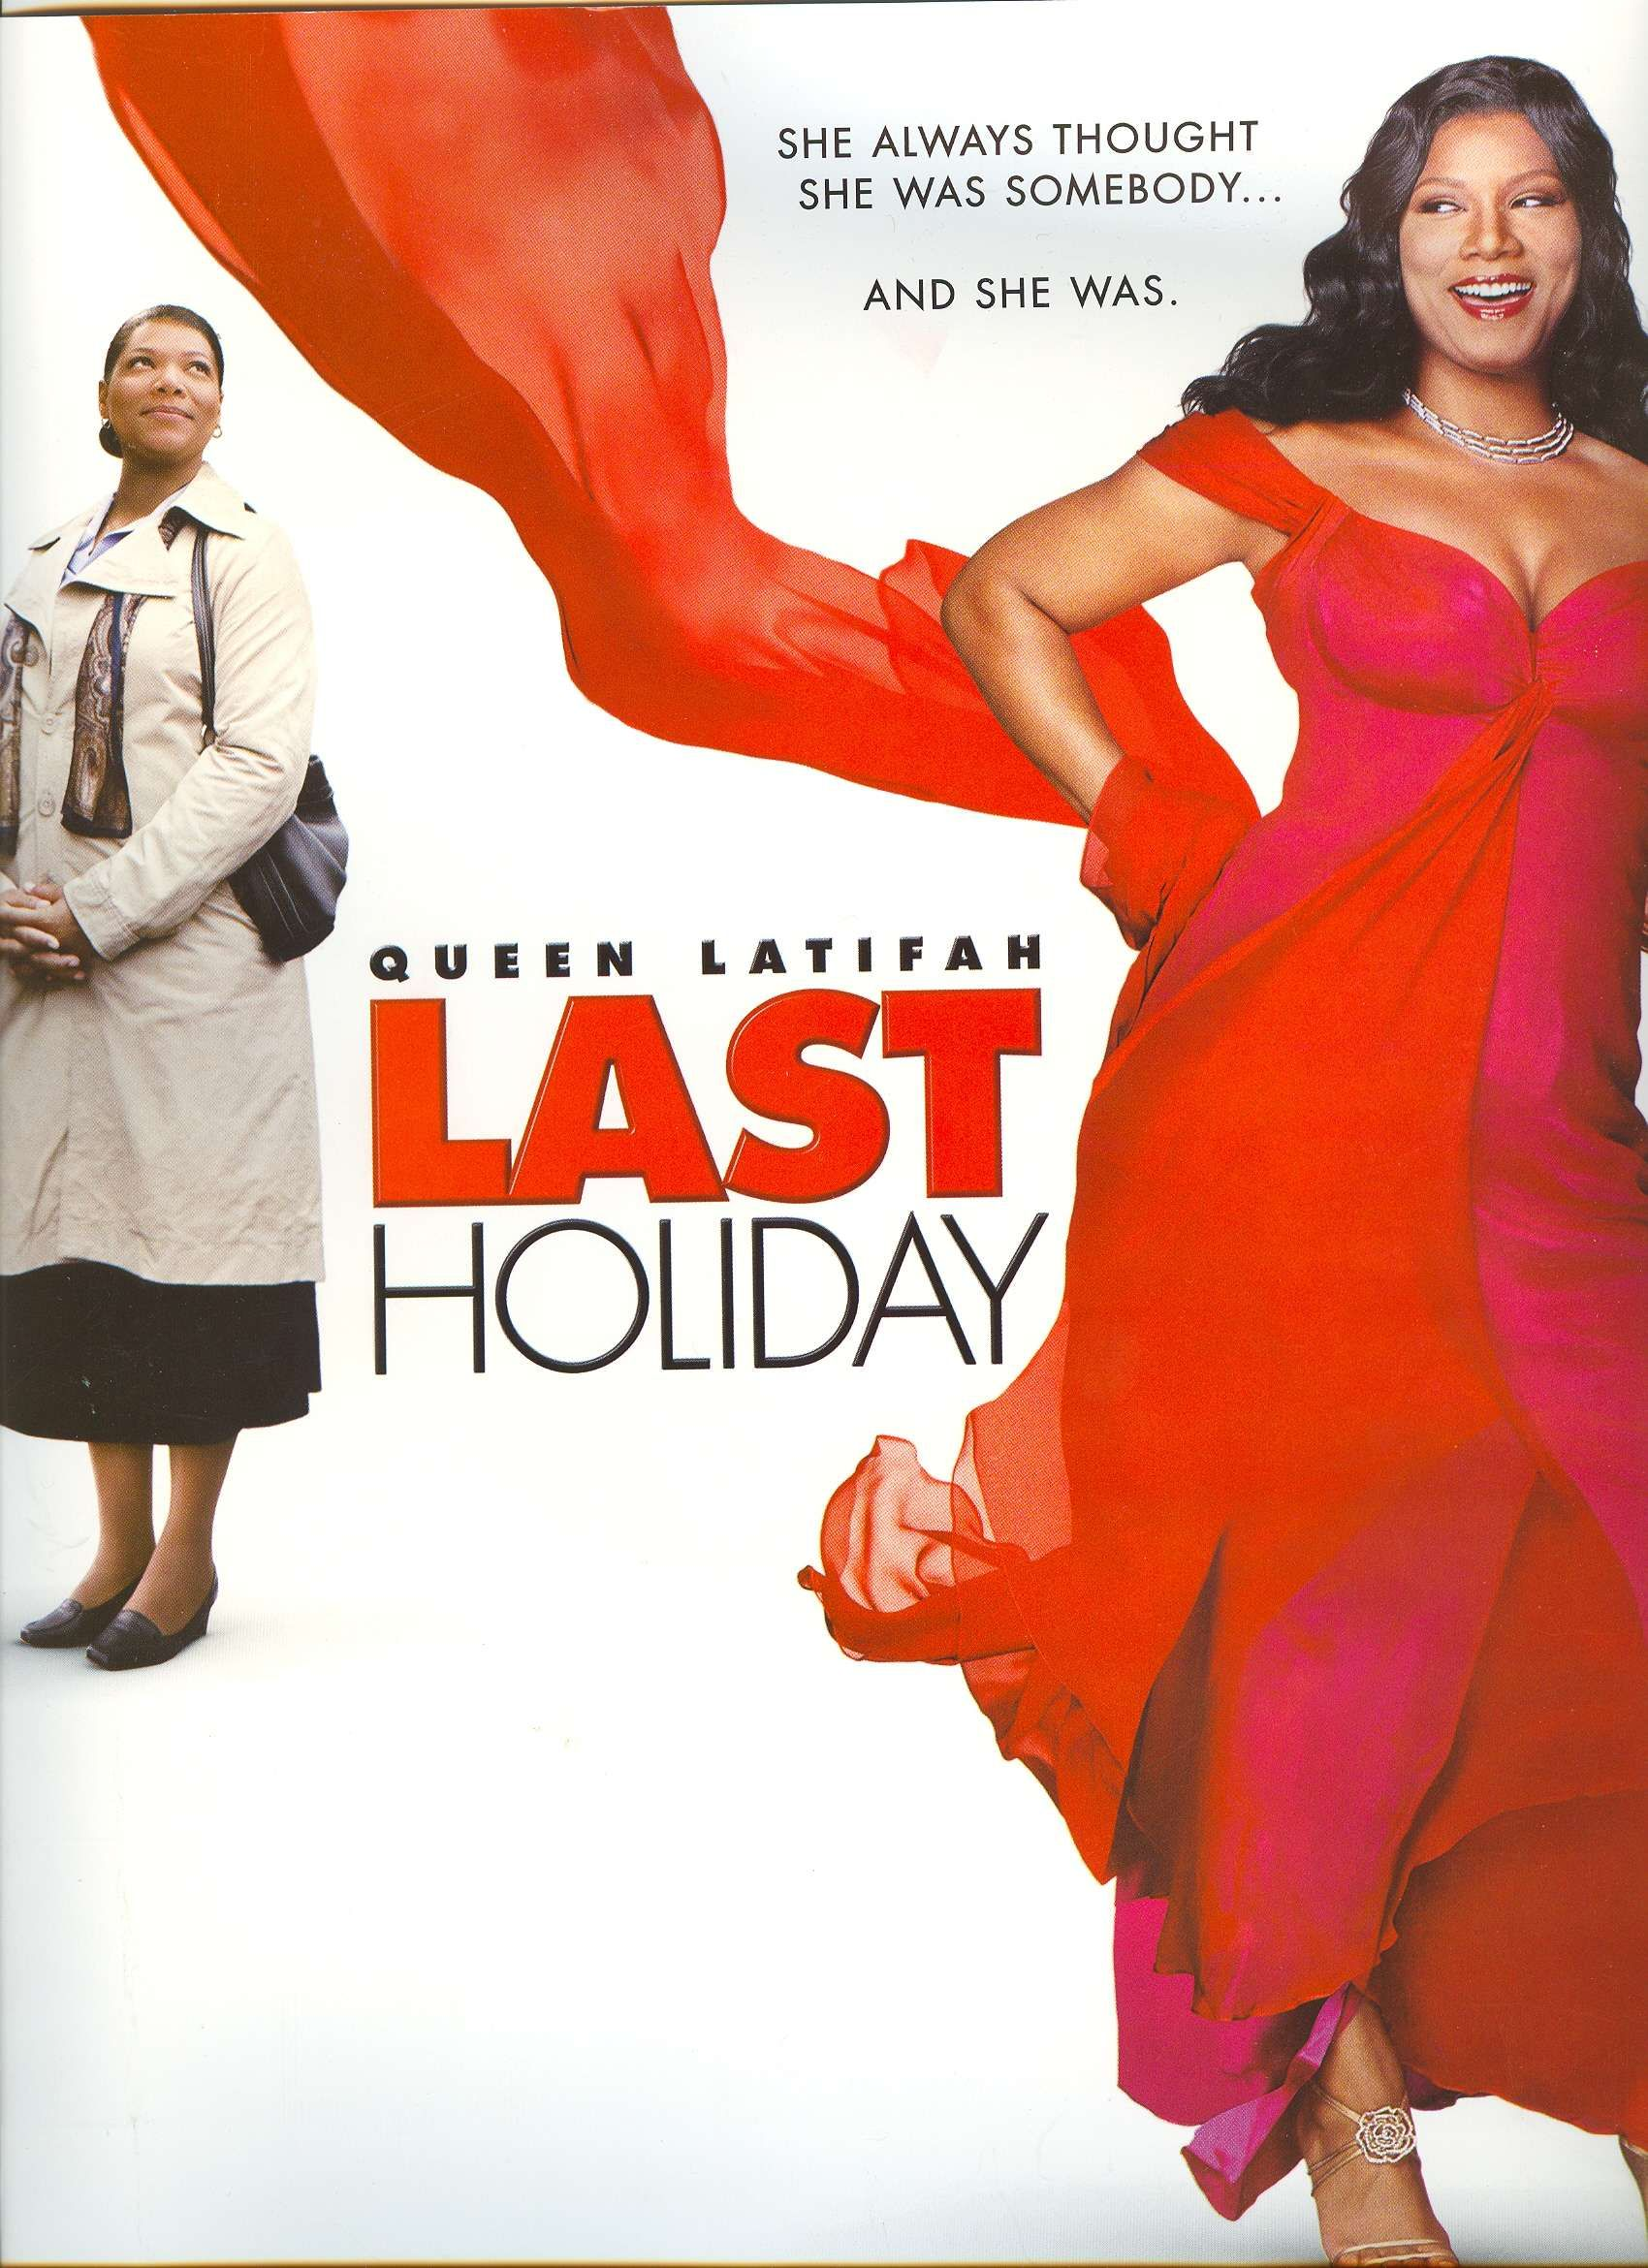 Last Holiday Movie Great Quote On This Poster Pinned From All Things Great Holiday Movies Last Holiday Movie Holiday Movie Last Holiday